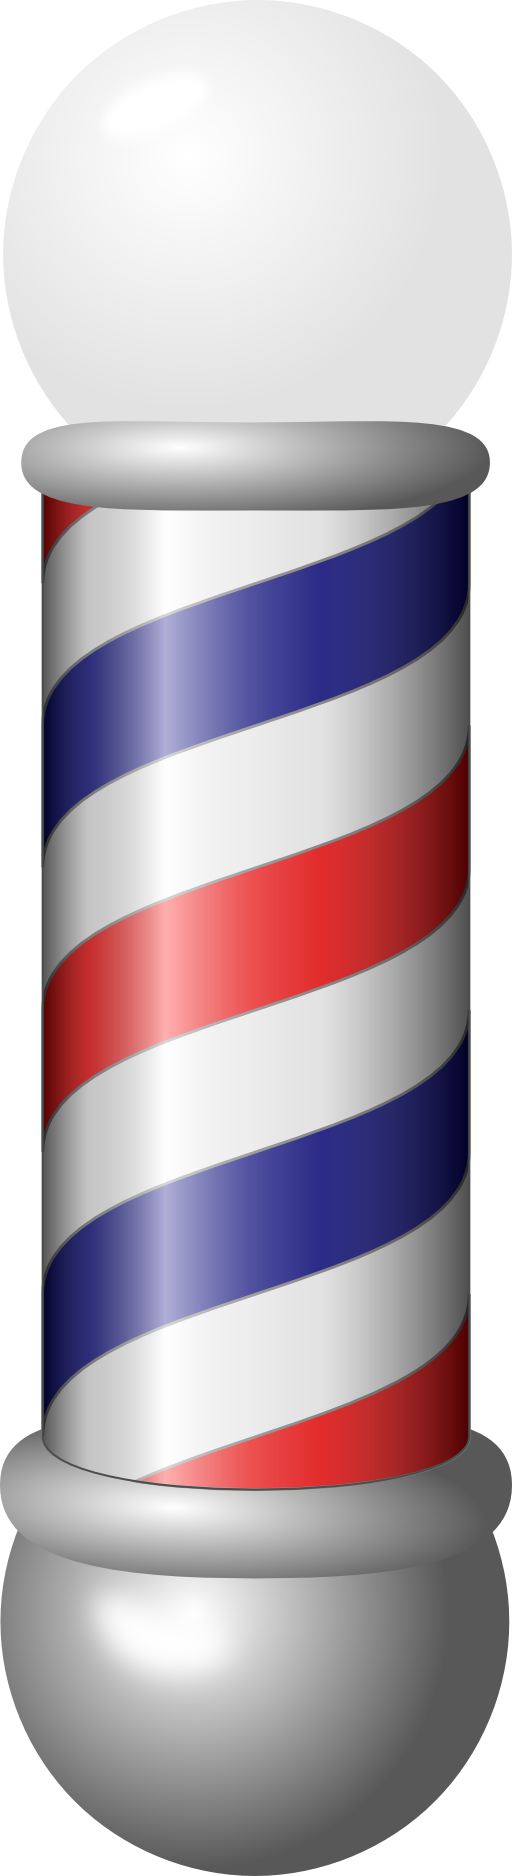 png library Barber Pole Clipart